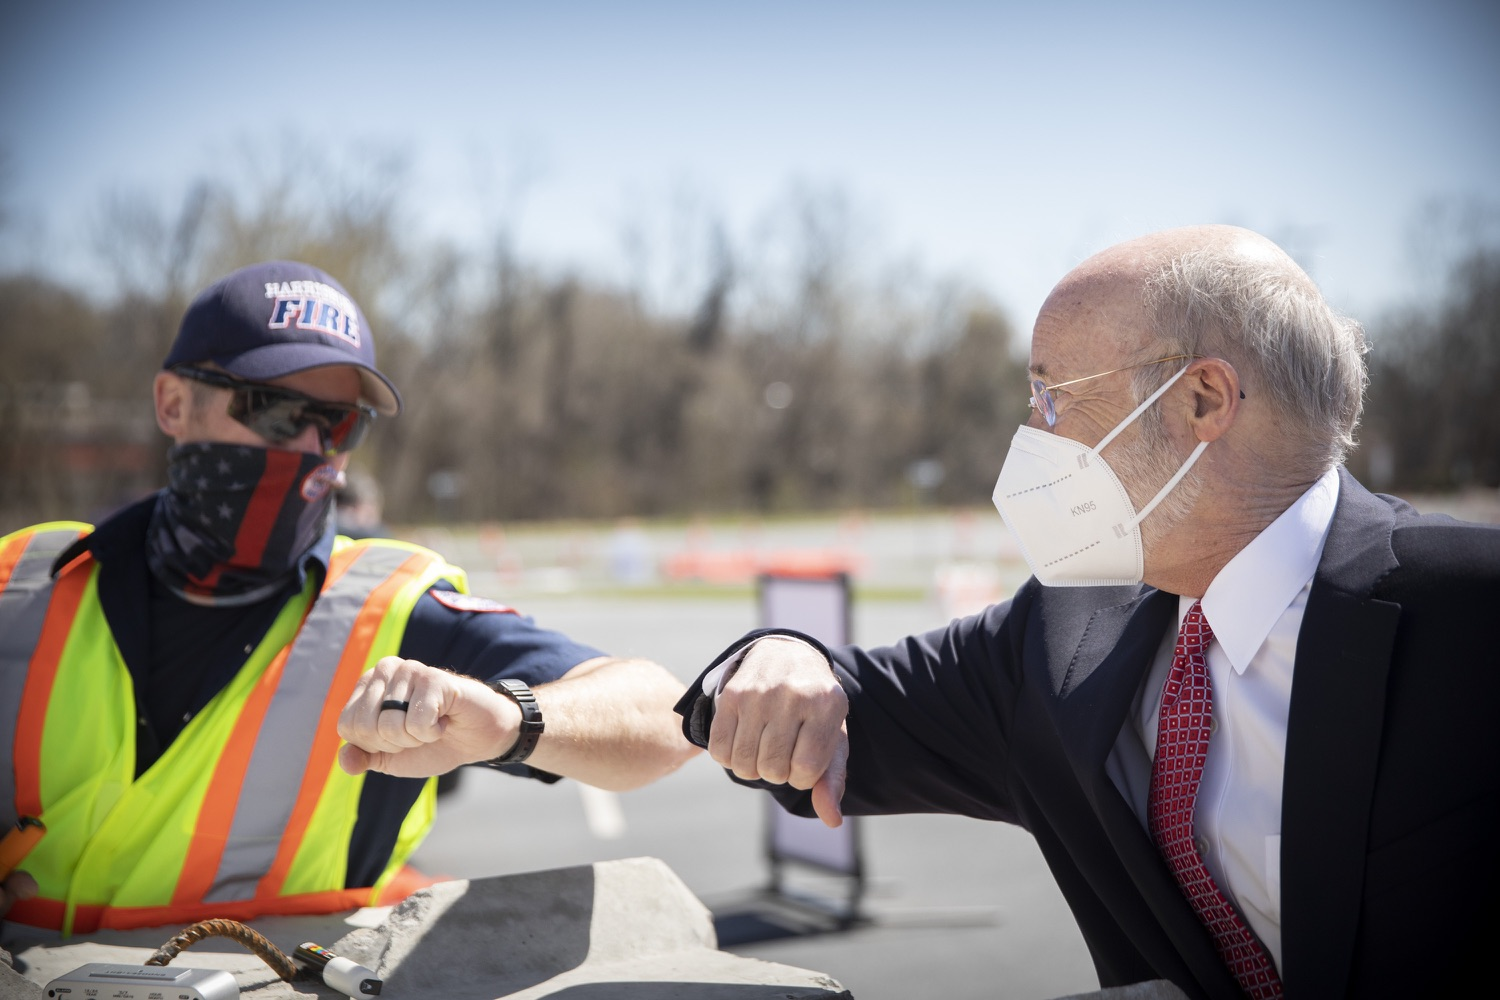 """<a href=""""https://filesource.wostreaming.net/commonwealthofpa/photo/18631_gov_hacc_vaccine_dz_006.jpg"""" target=""""_blank"""">⇣Download Photo<br></a>Pennsylvania Governor Tom Wolf greeting workers at the vaccination site.Governor Wolf today visited the COVID-19 drive-thru mass vaccination clinic for Dauphin County residents at Harrisburg Area Community College. The drive-thru clinic was developed in partnership with UPMC Pinnacle and Dauphin County. He was joined by UPMC Pinnacle President Phil Guarneschelli and Dauphin County Commissioners Mike Pries and George P. Hartwick III.  HARRISBURG, PA -- March 30, 2021"""